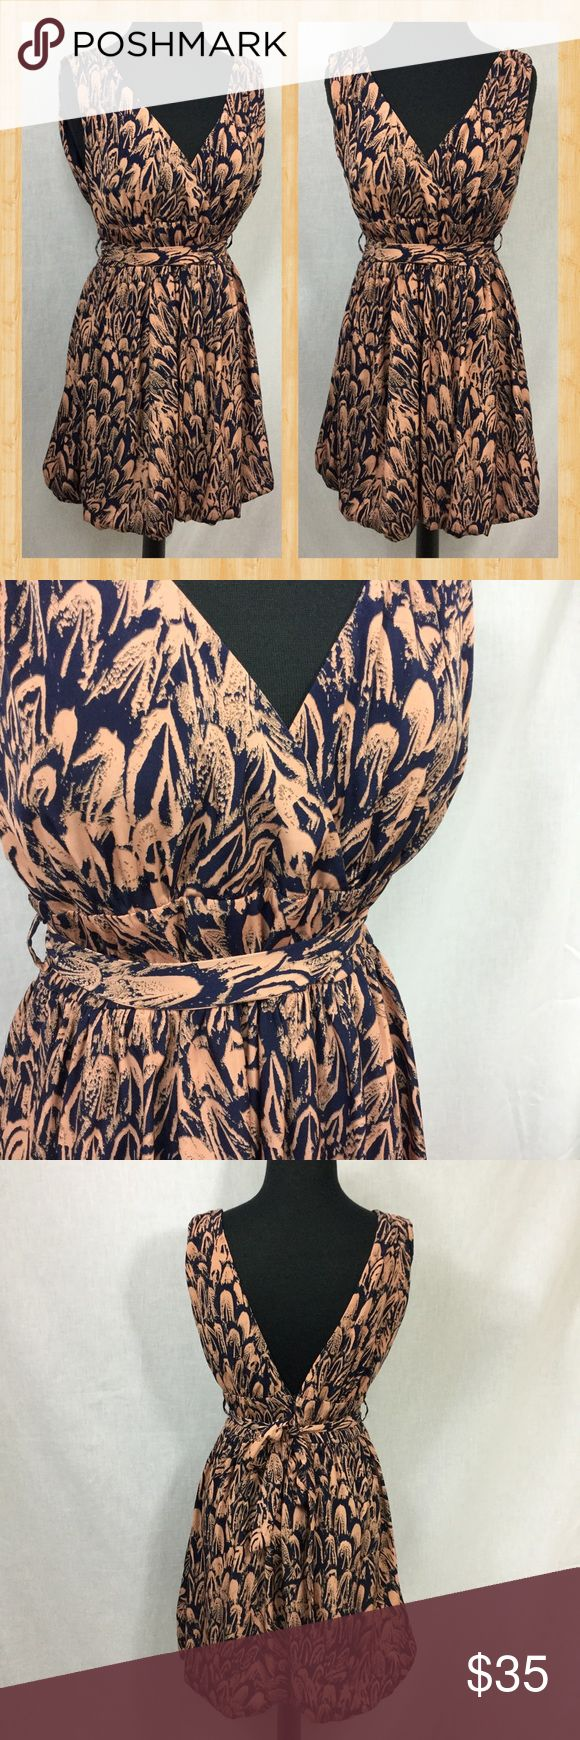 """Apricot Lane Dress Ya Los Angeles dress purchased from Apricot Lane.  Elastic slight bubble bottom.  Removable belt.  Deep V back.  Navy & salmon color.  Laying flat: armpit to armpit 15""""... pulled to 18"""" comfortably, waist 15"""", length 33"""". Ya Los Angeles Dresses"""